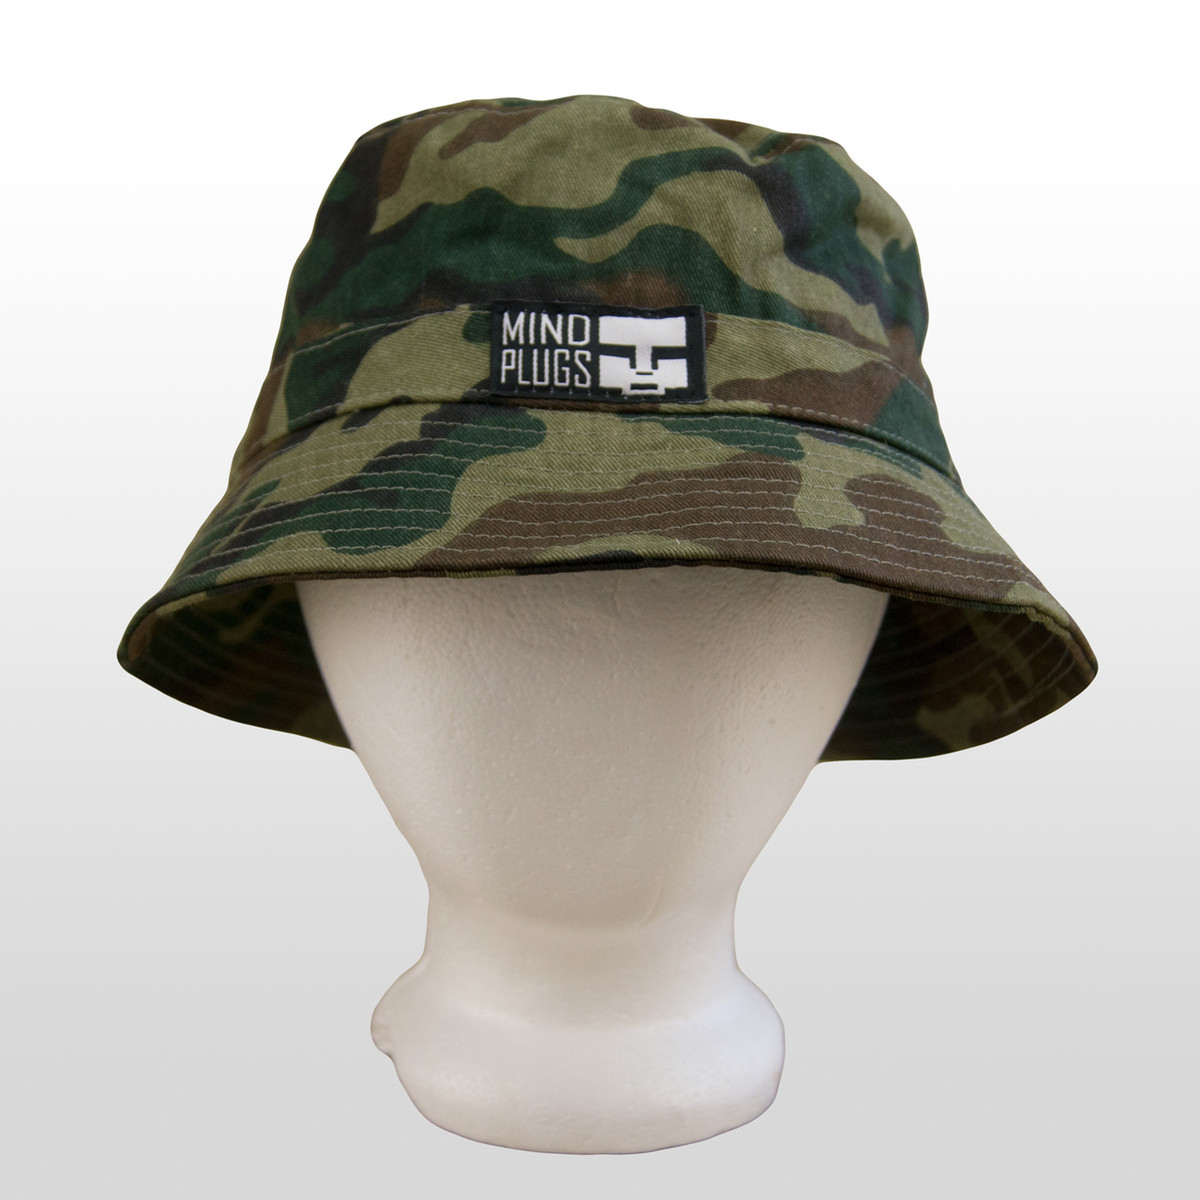 10ed8539 Add this functional yet fashionable Camouflage Mind Plugs bucket hat to  your outfit to add instant